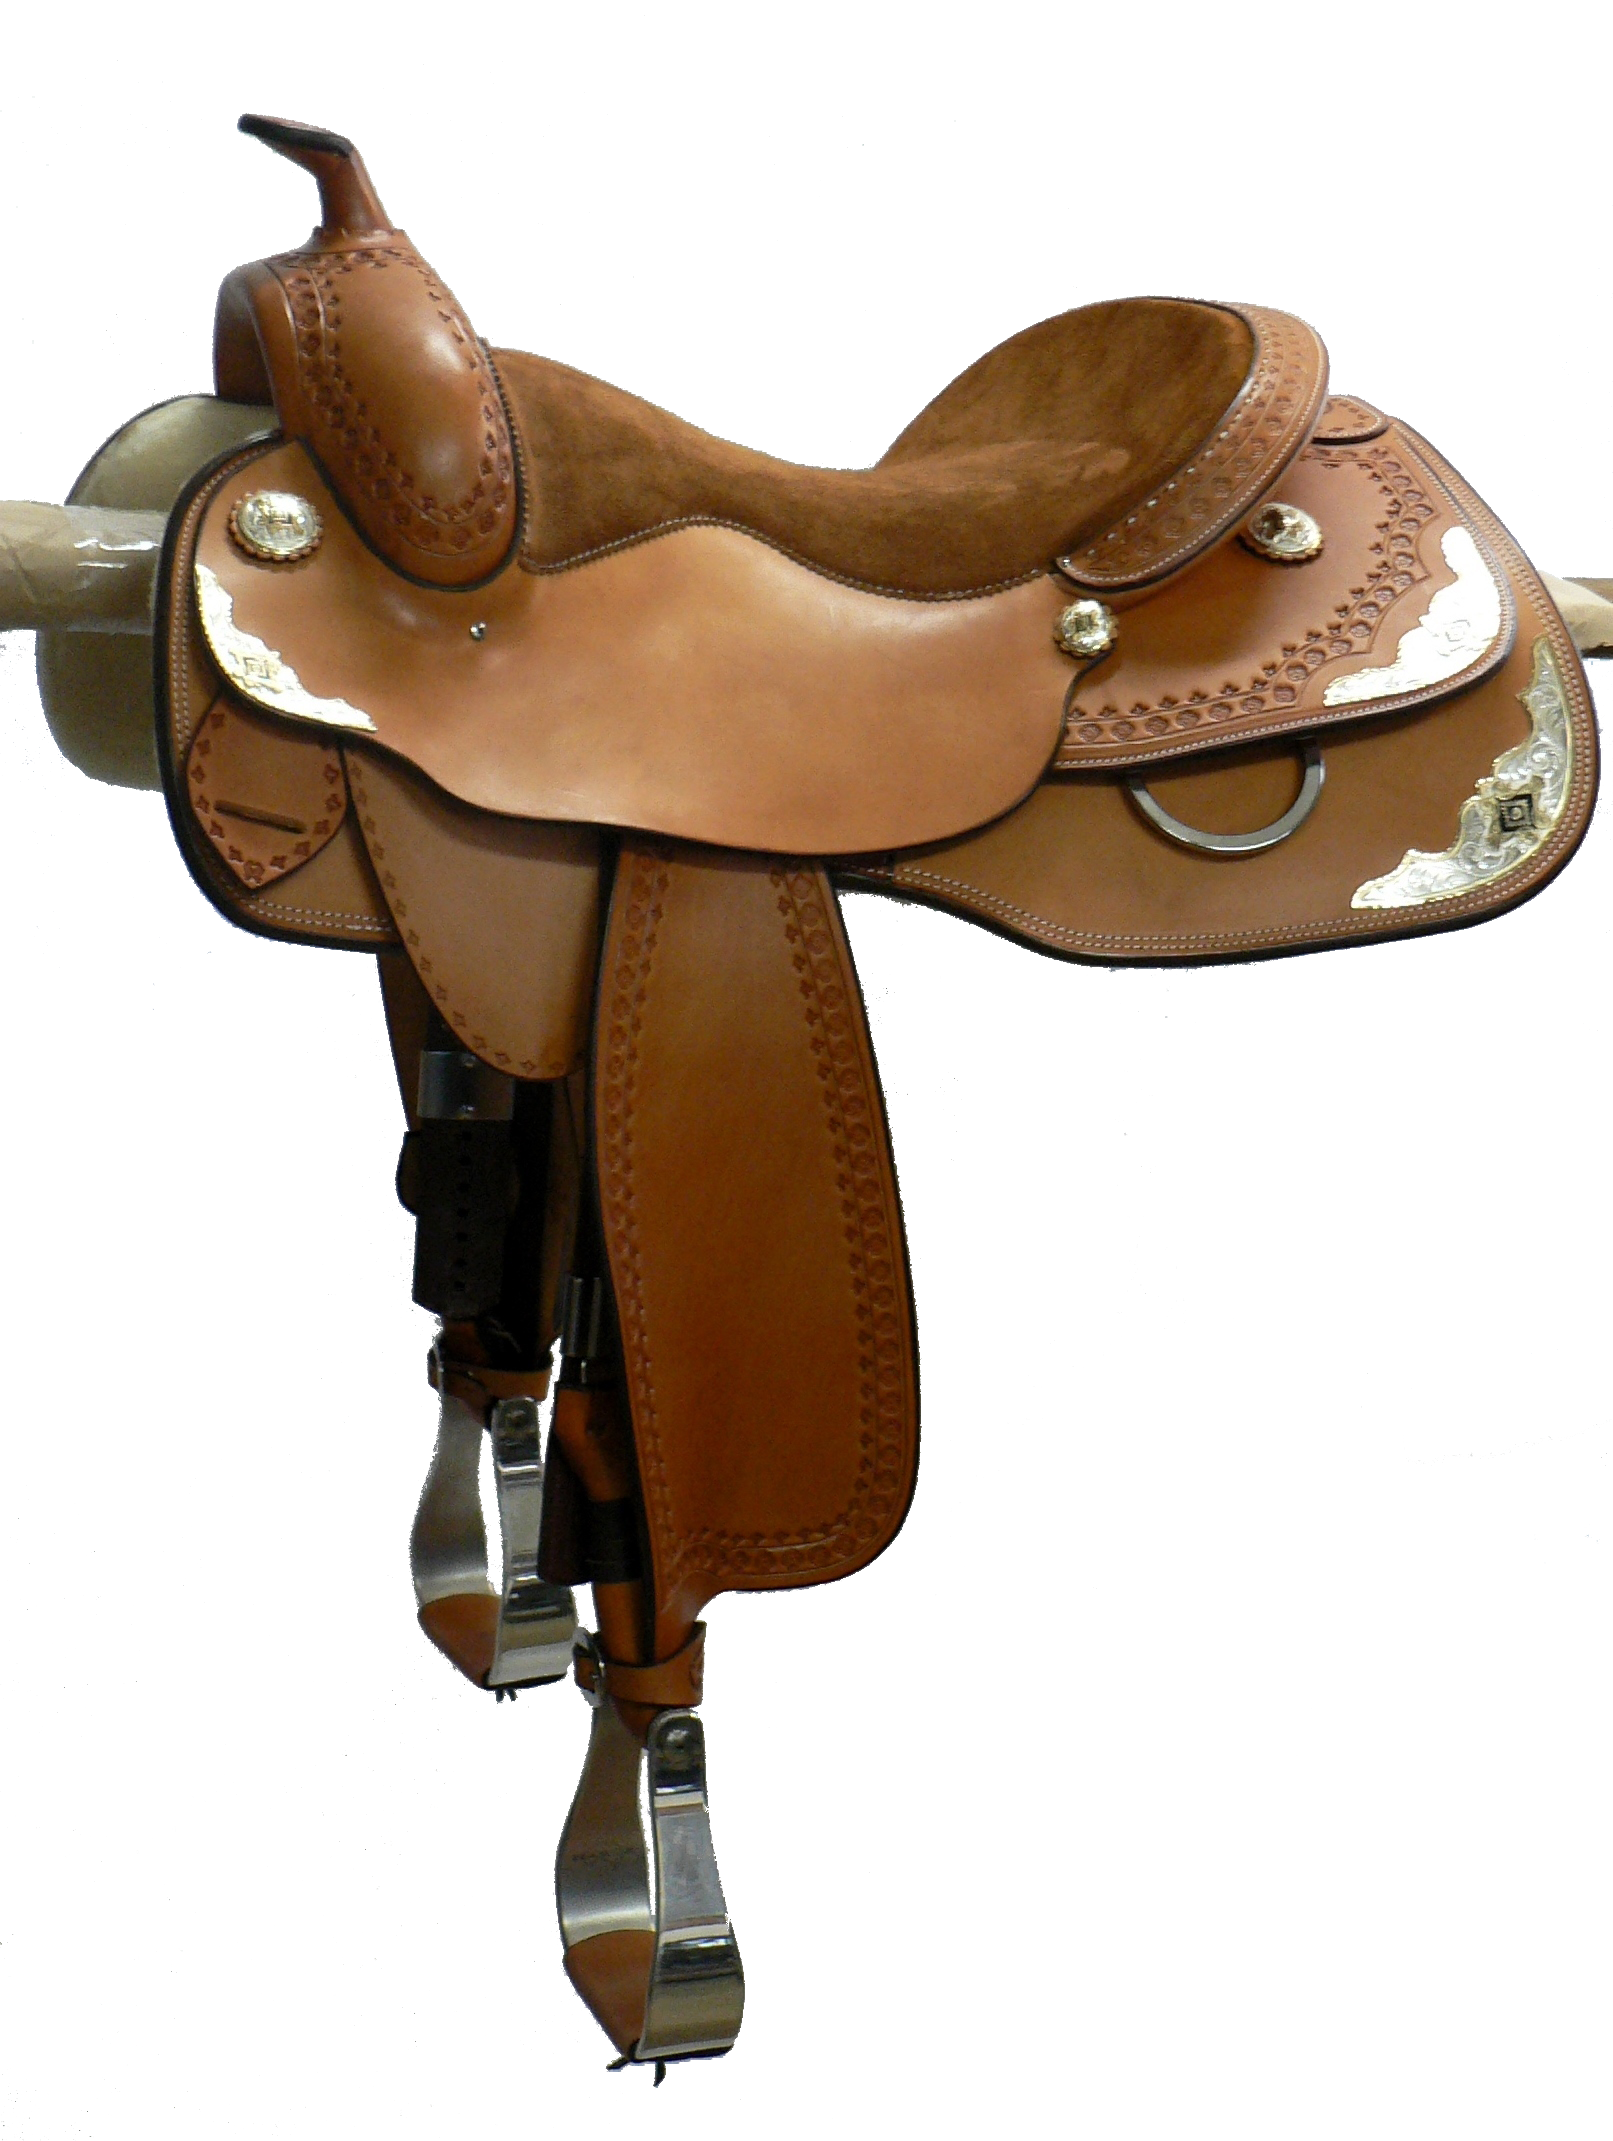 Show Saddle - This saddle made with:- Natural LeatherAll saddles come fitted with Don Orrell Rancher Stirrups & Professional's Choice VenTECH Western Girth. Add ons:- Small, Medium and Large Custom Silver Corner Plates- Silver Conchos- Double Edge Stamping